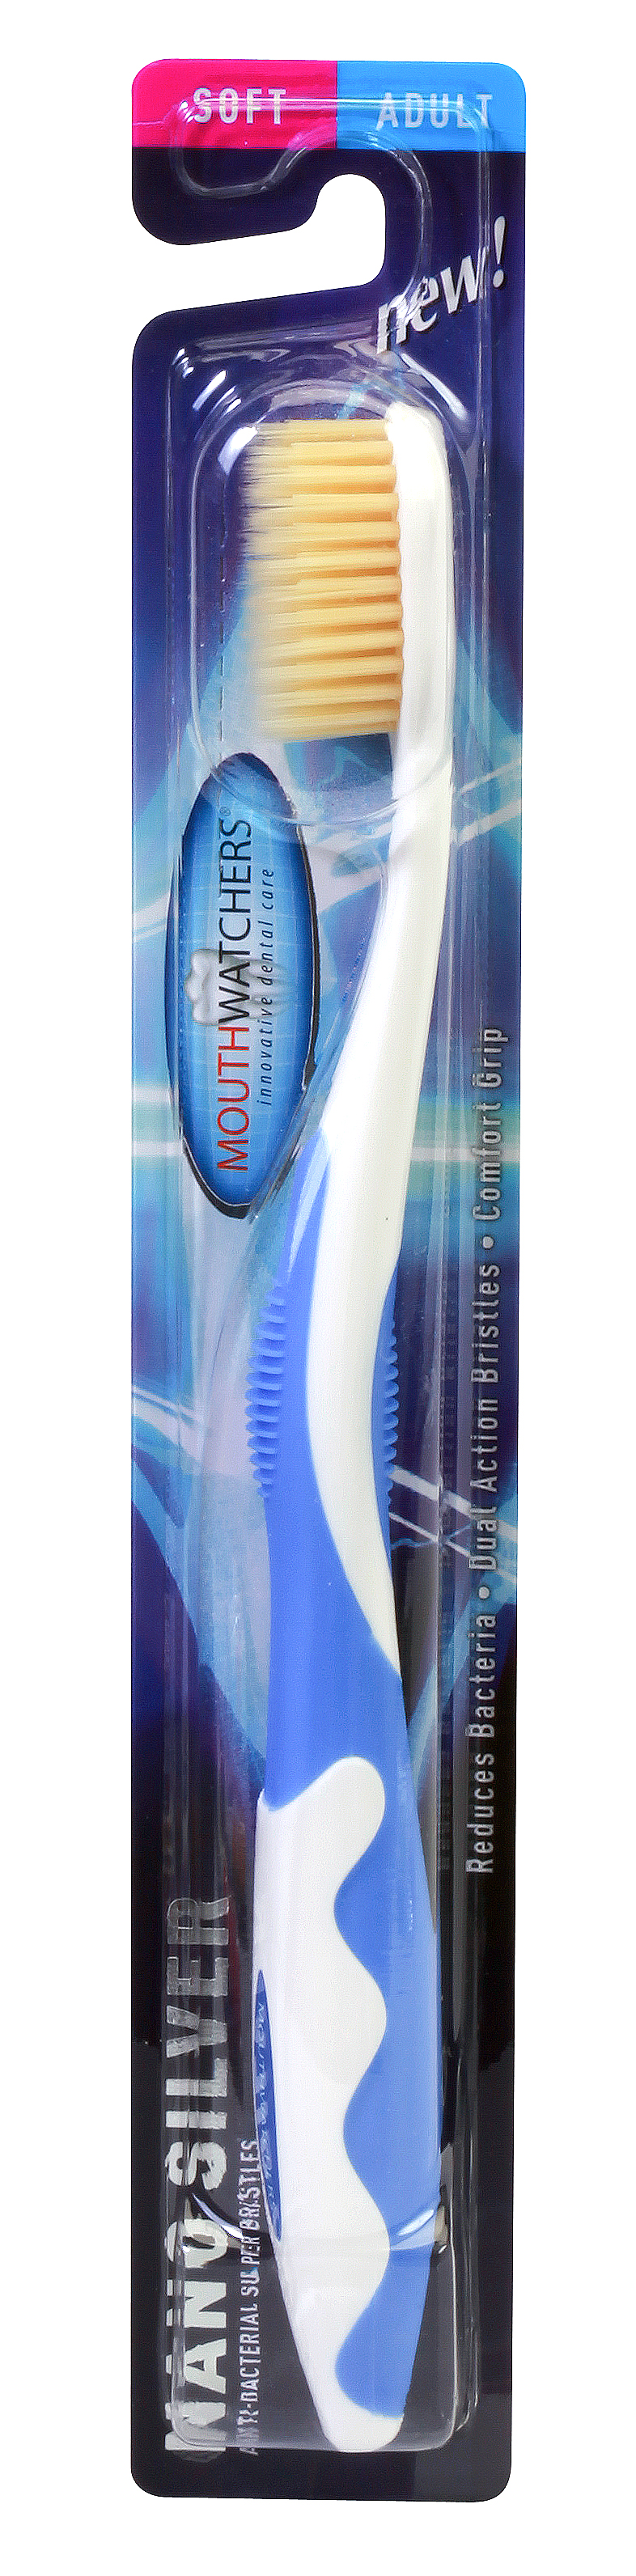 Mouth Watchers Toothbrush Adult NANO SILVER